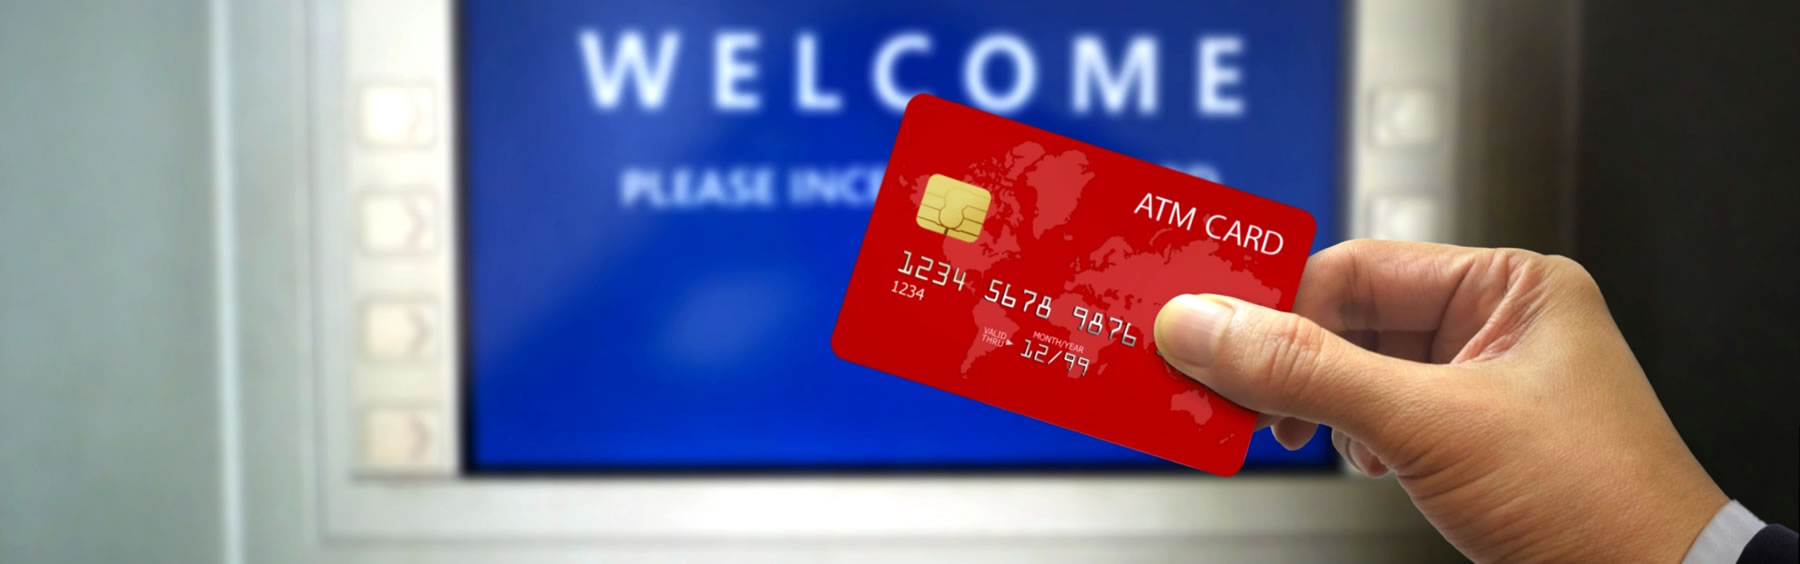 Funds Access Inc - ATM Services in the Midwest